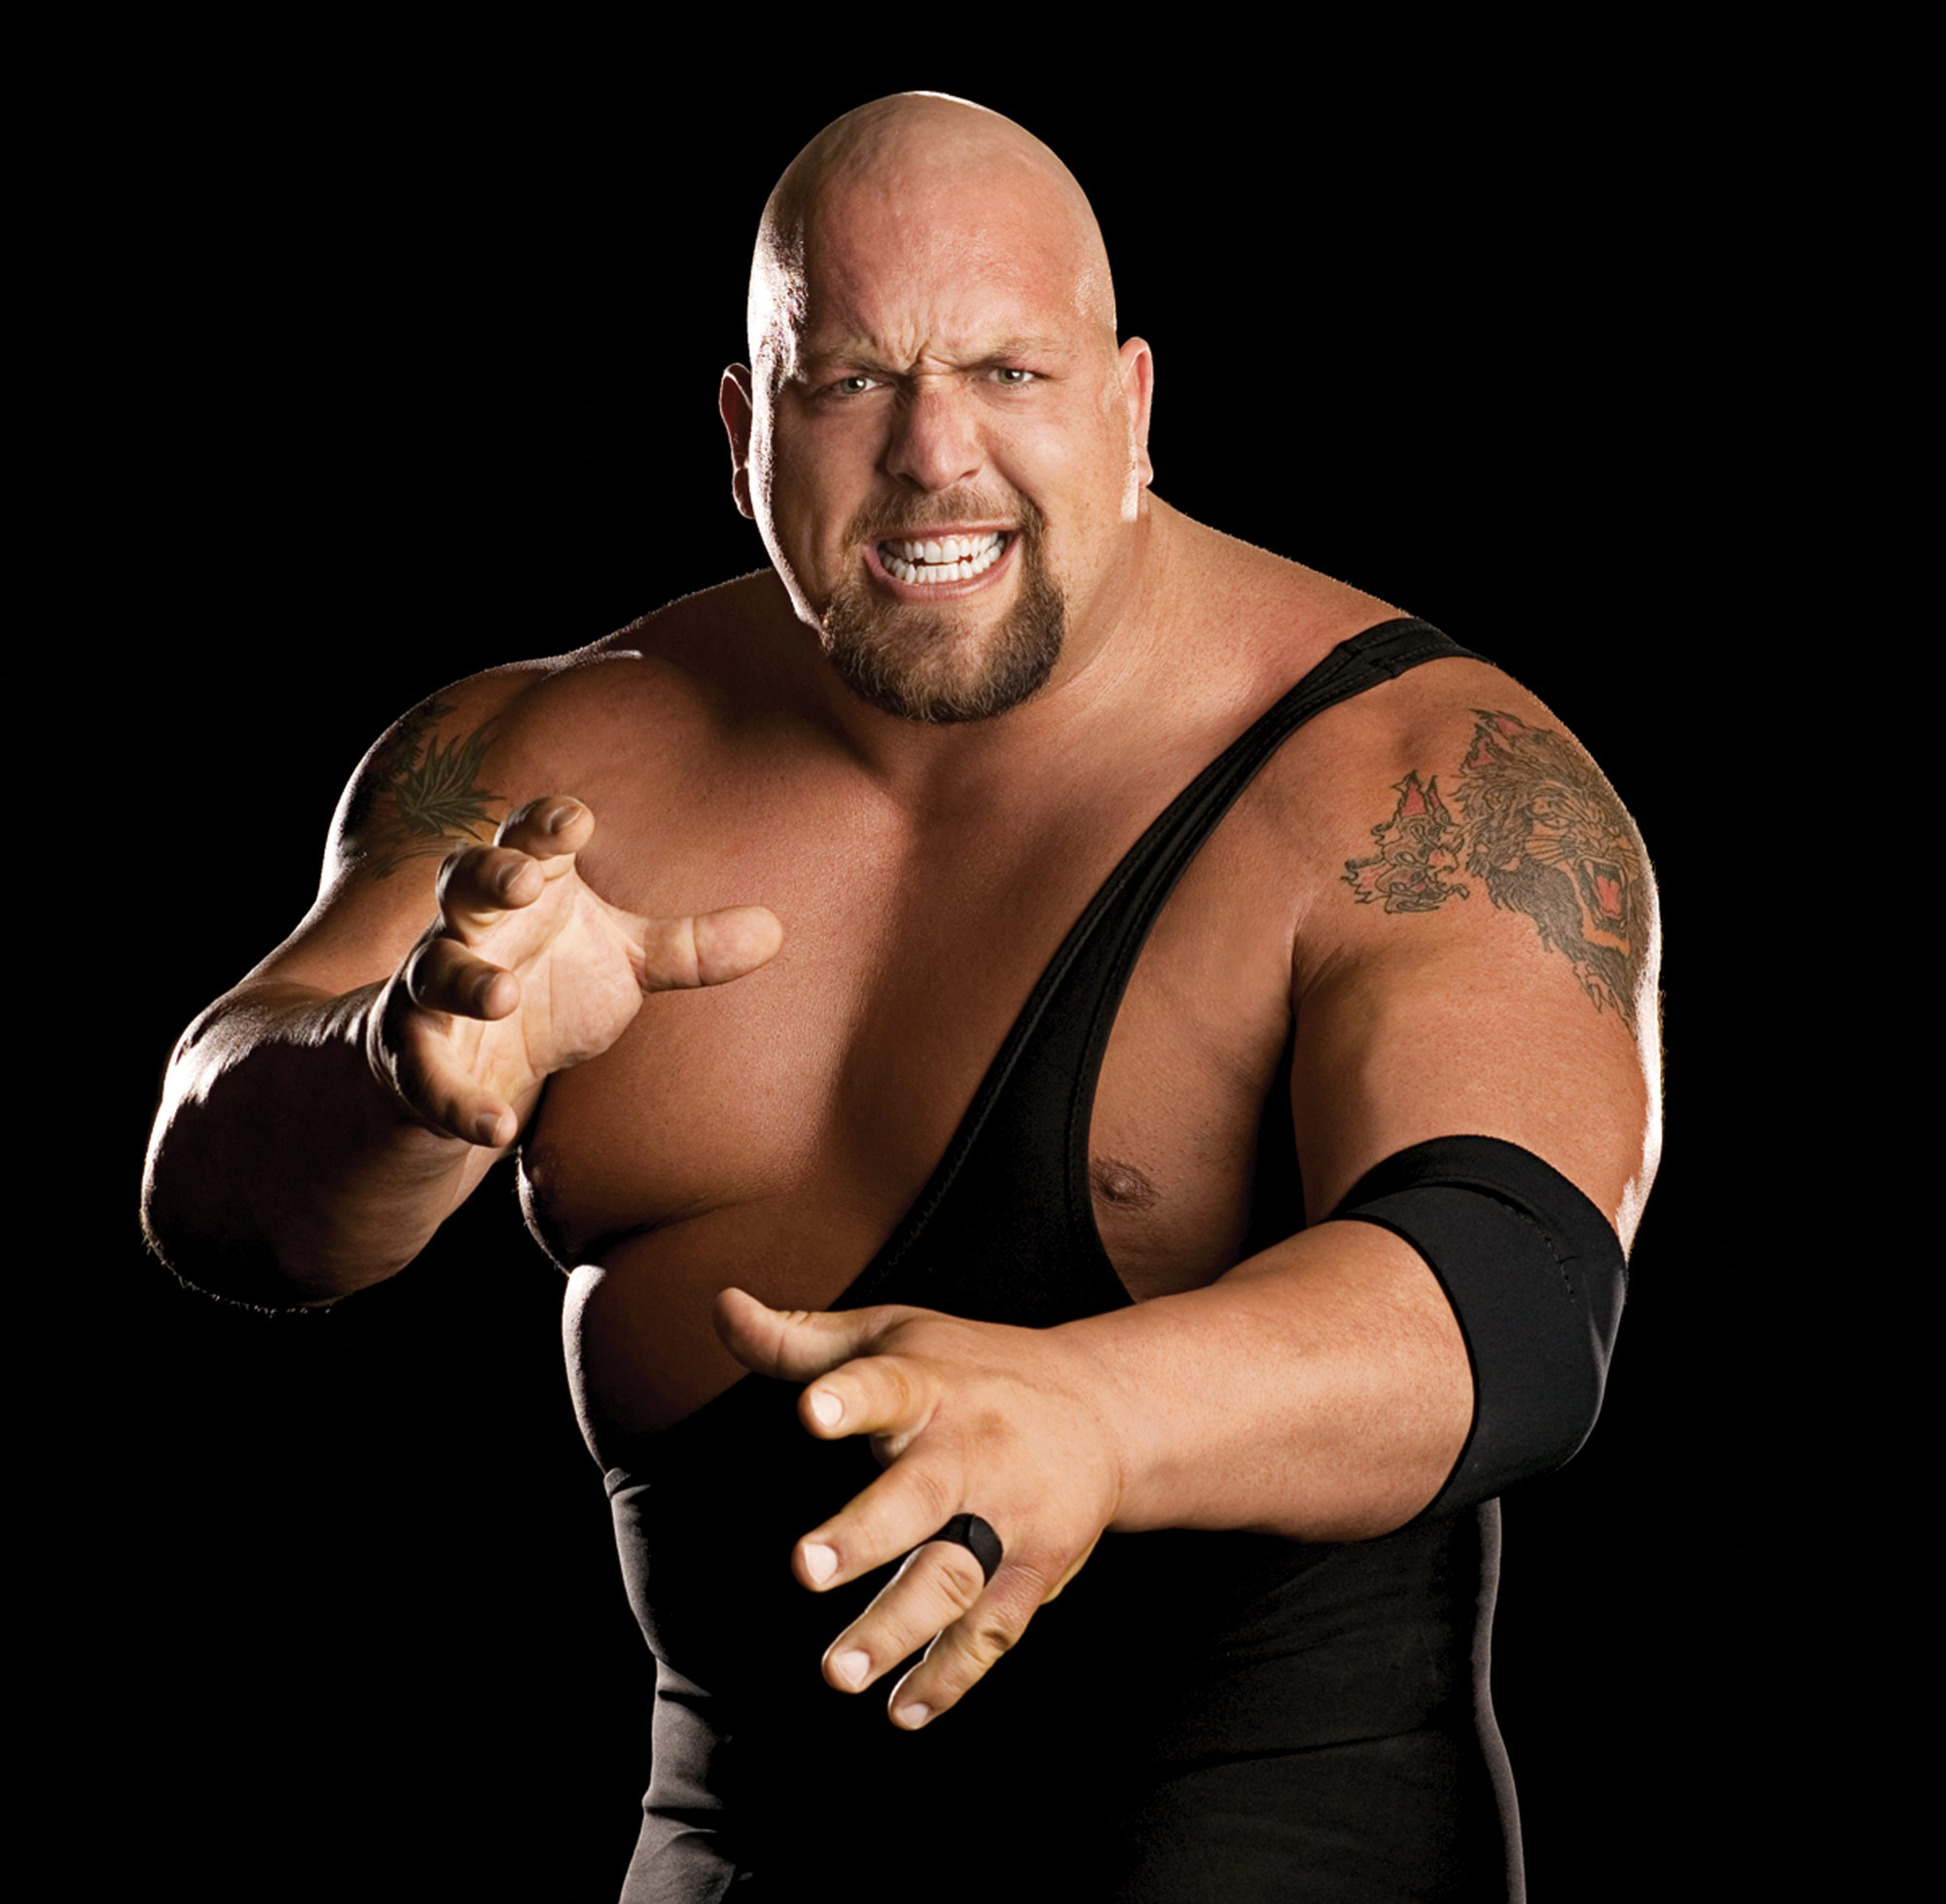 big show free wallpaper hd